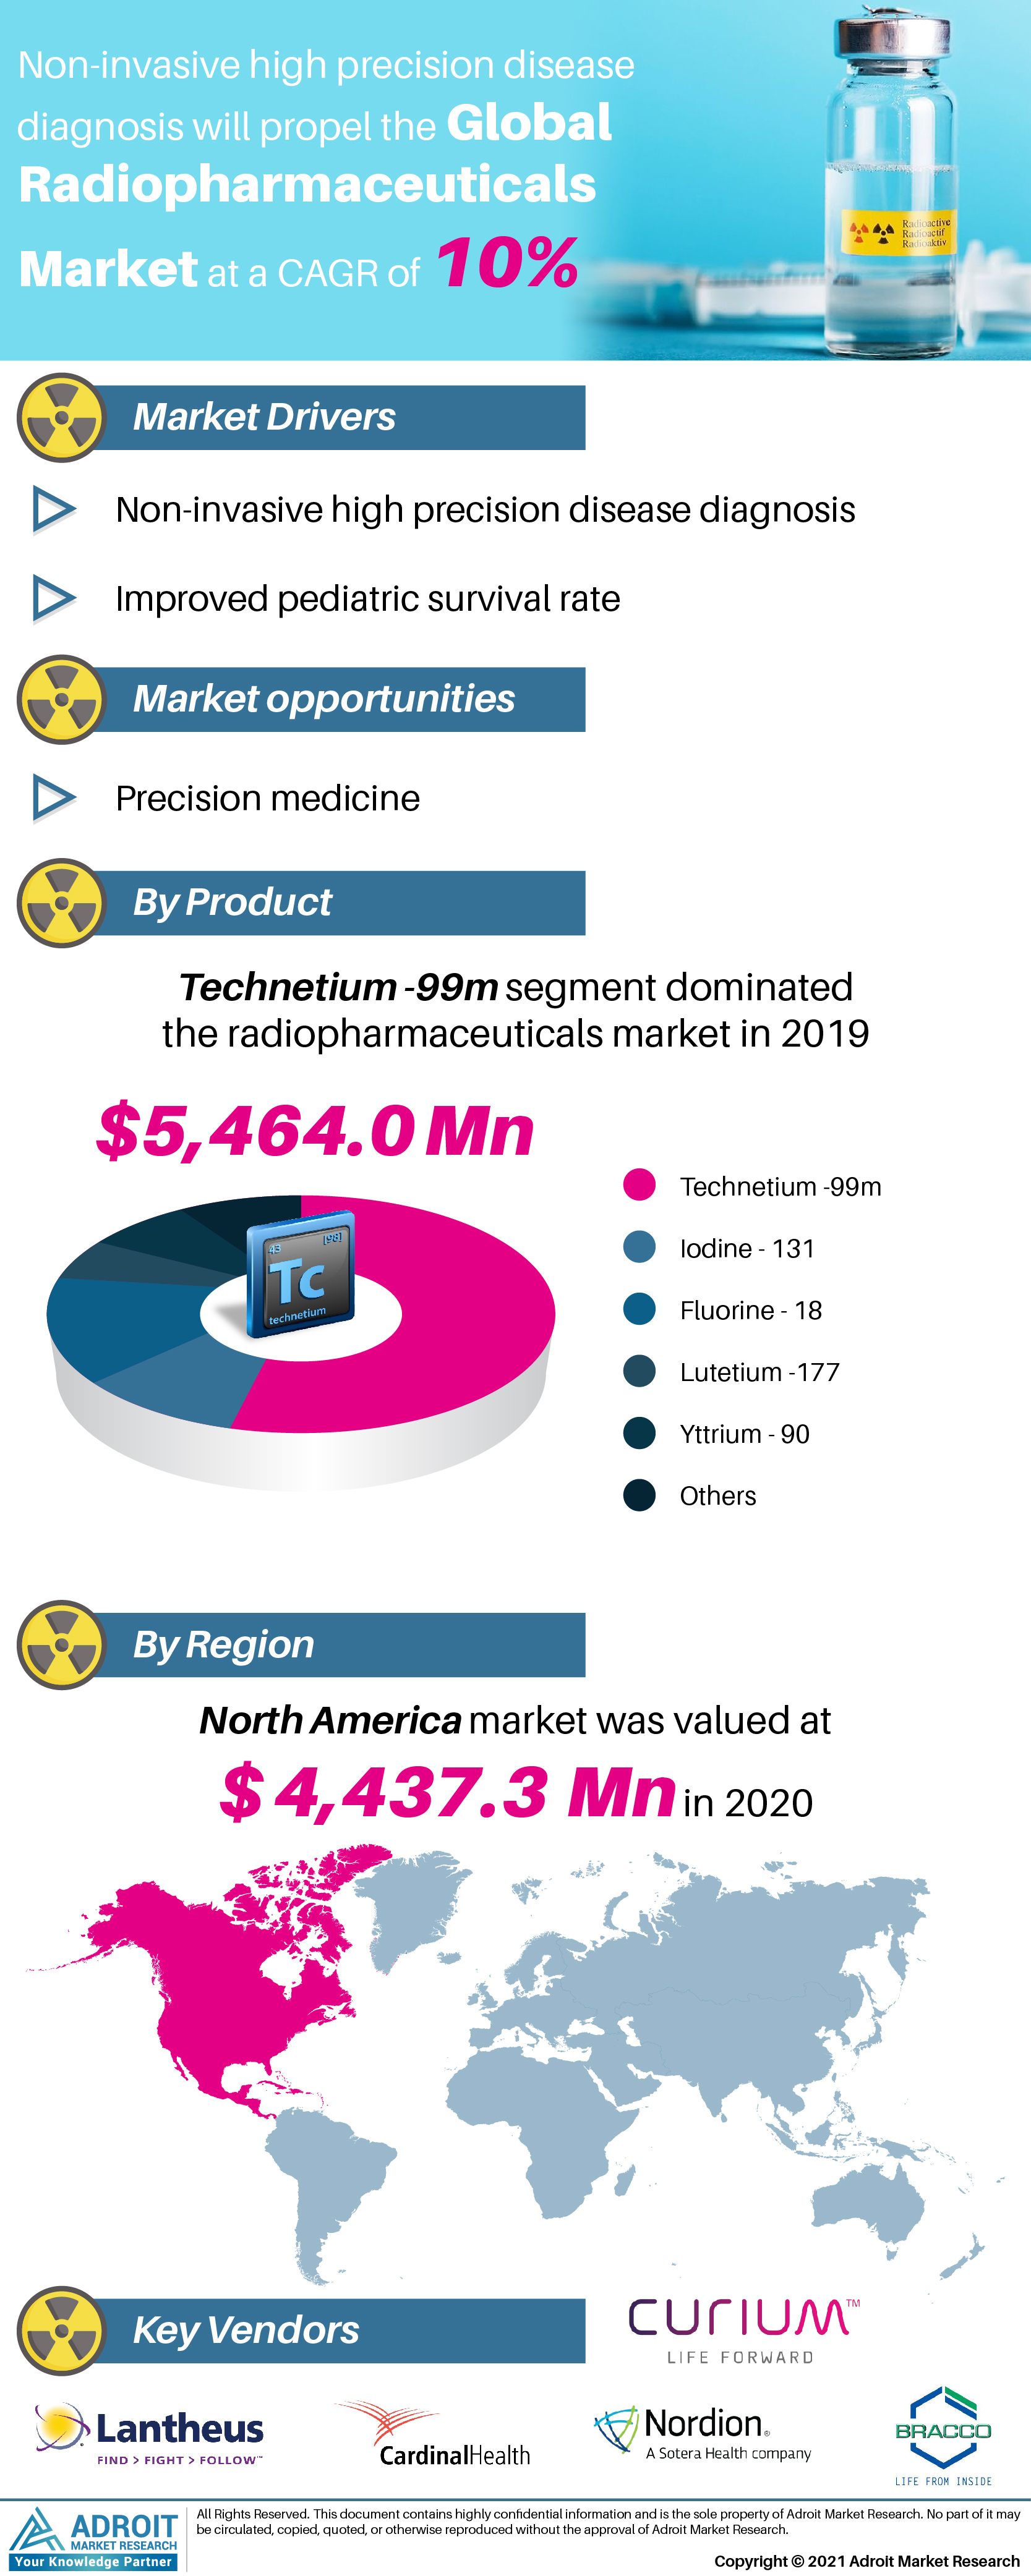 Radiopharmaceuticals Market Trends and Forecasts Research Report